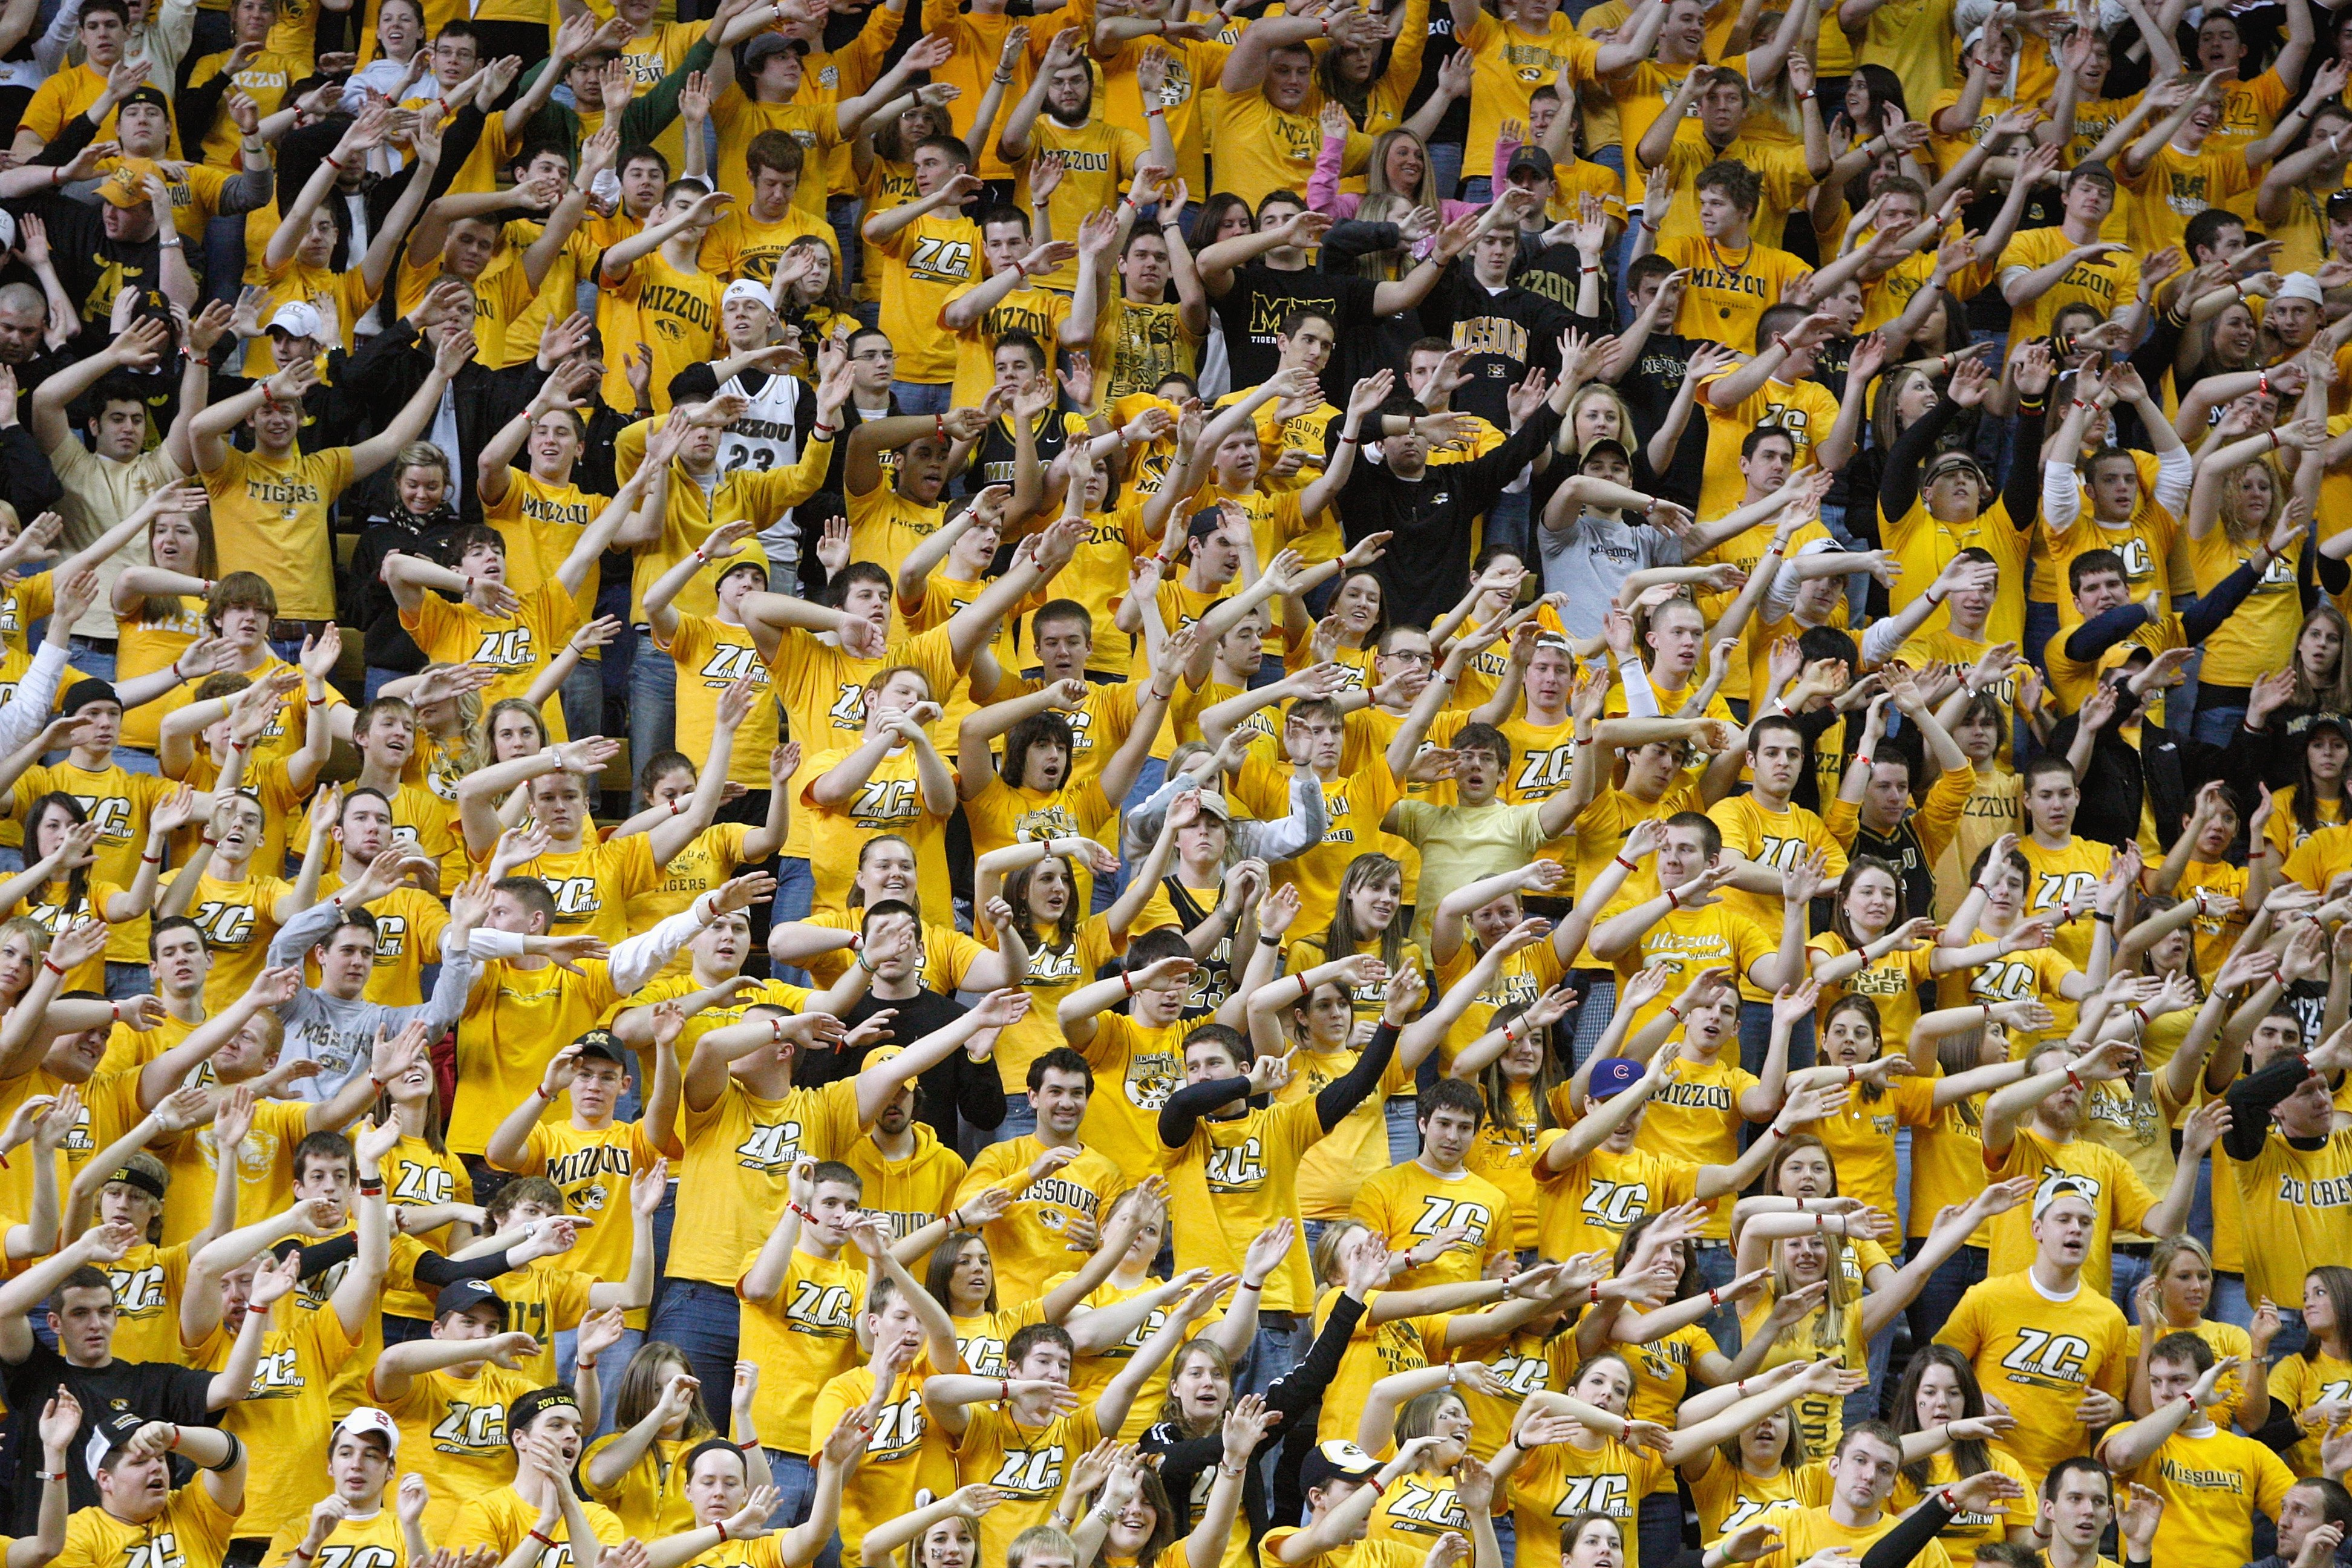 COLUMBIA, MISSOURI - FEBRUARY 14:  Fans of the Missouri Tigers cheer against the Nebraska Huskers during the game on February 14, 2009 at Mizzou Arena in Columbia, Missouri. (Photo by: Jamie Squire/Getty Images)